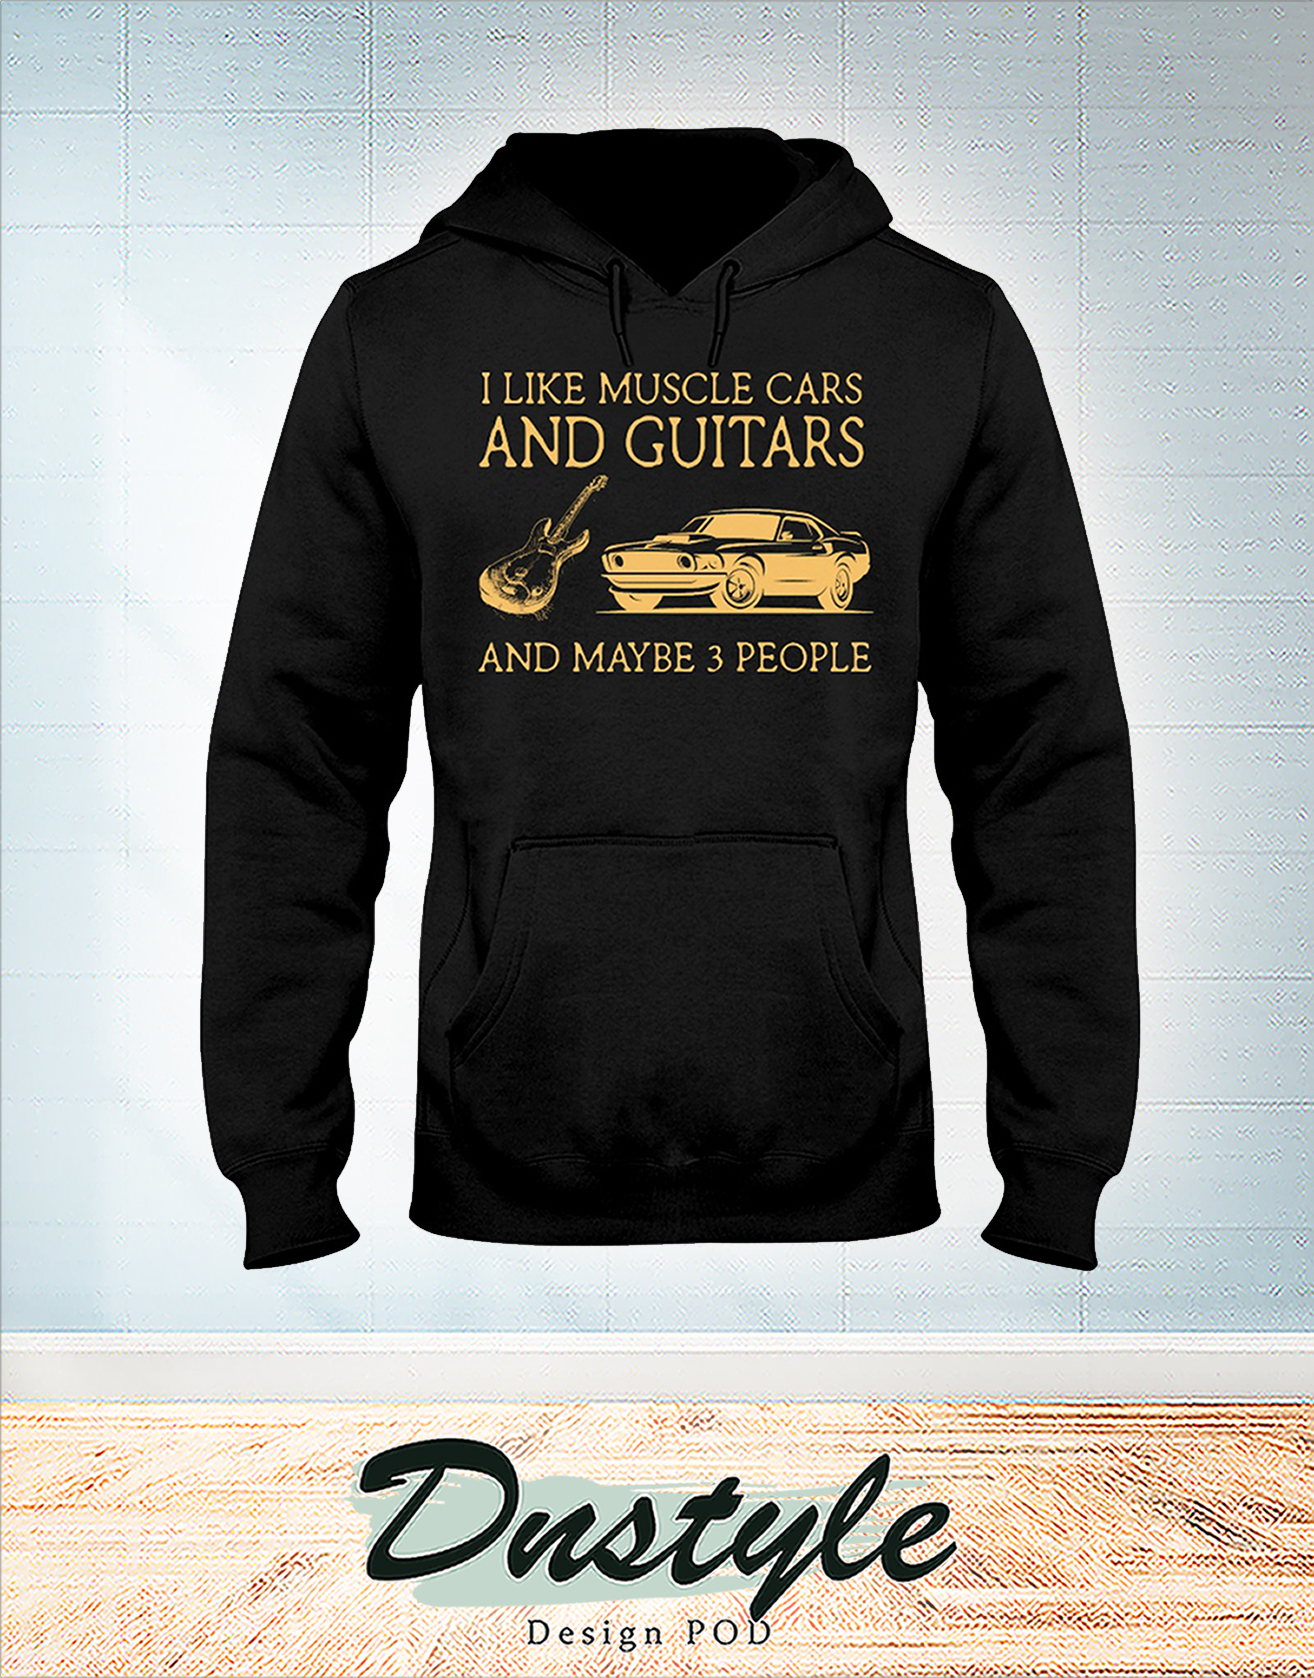 I like muscle cars and guitars and maybe 3 people hoodie